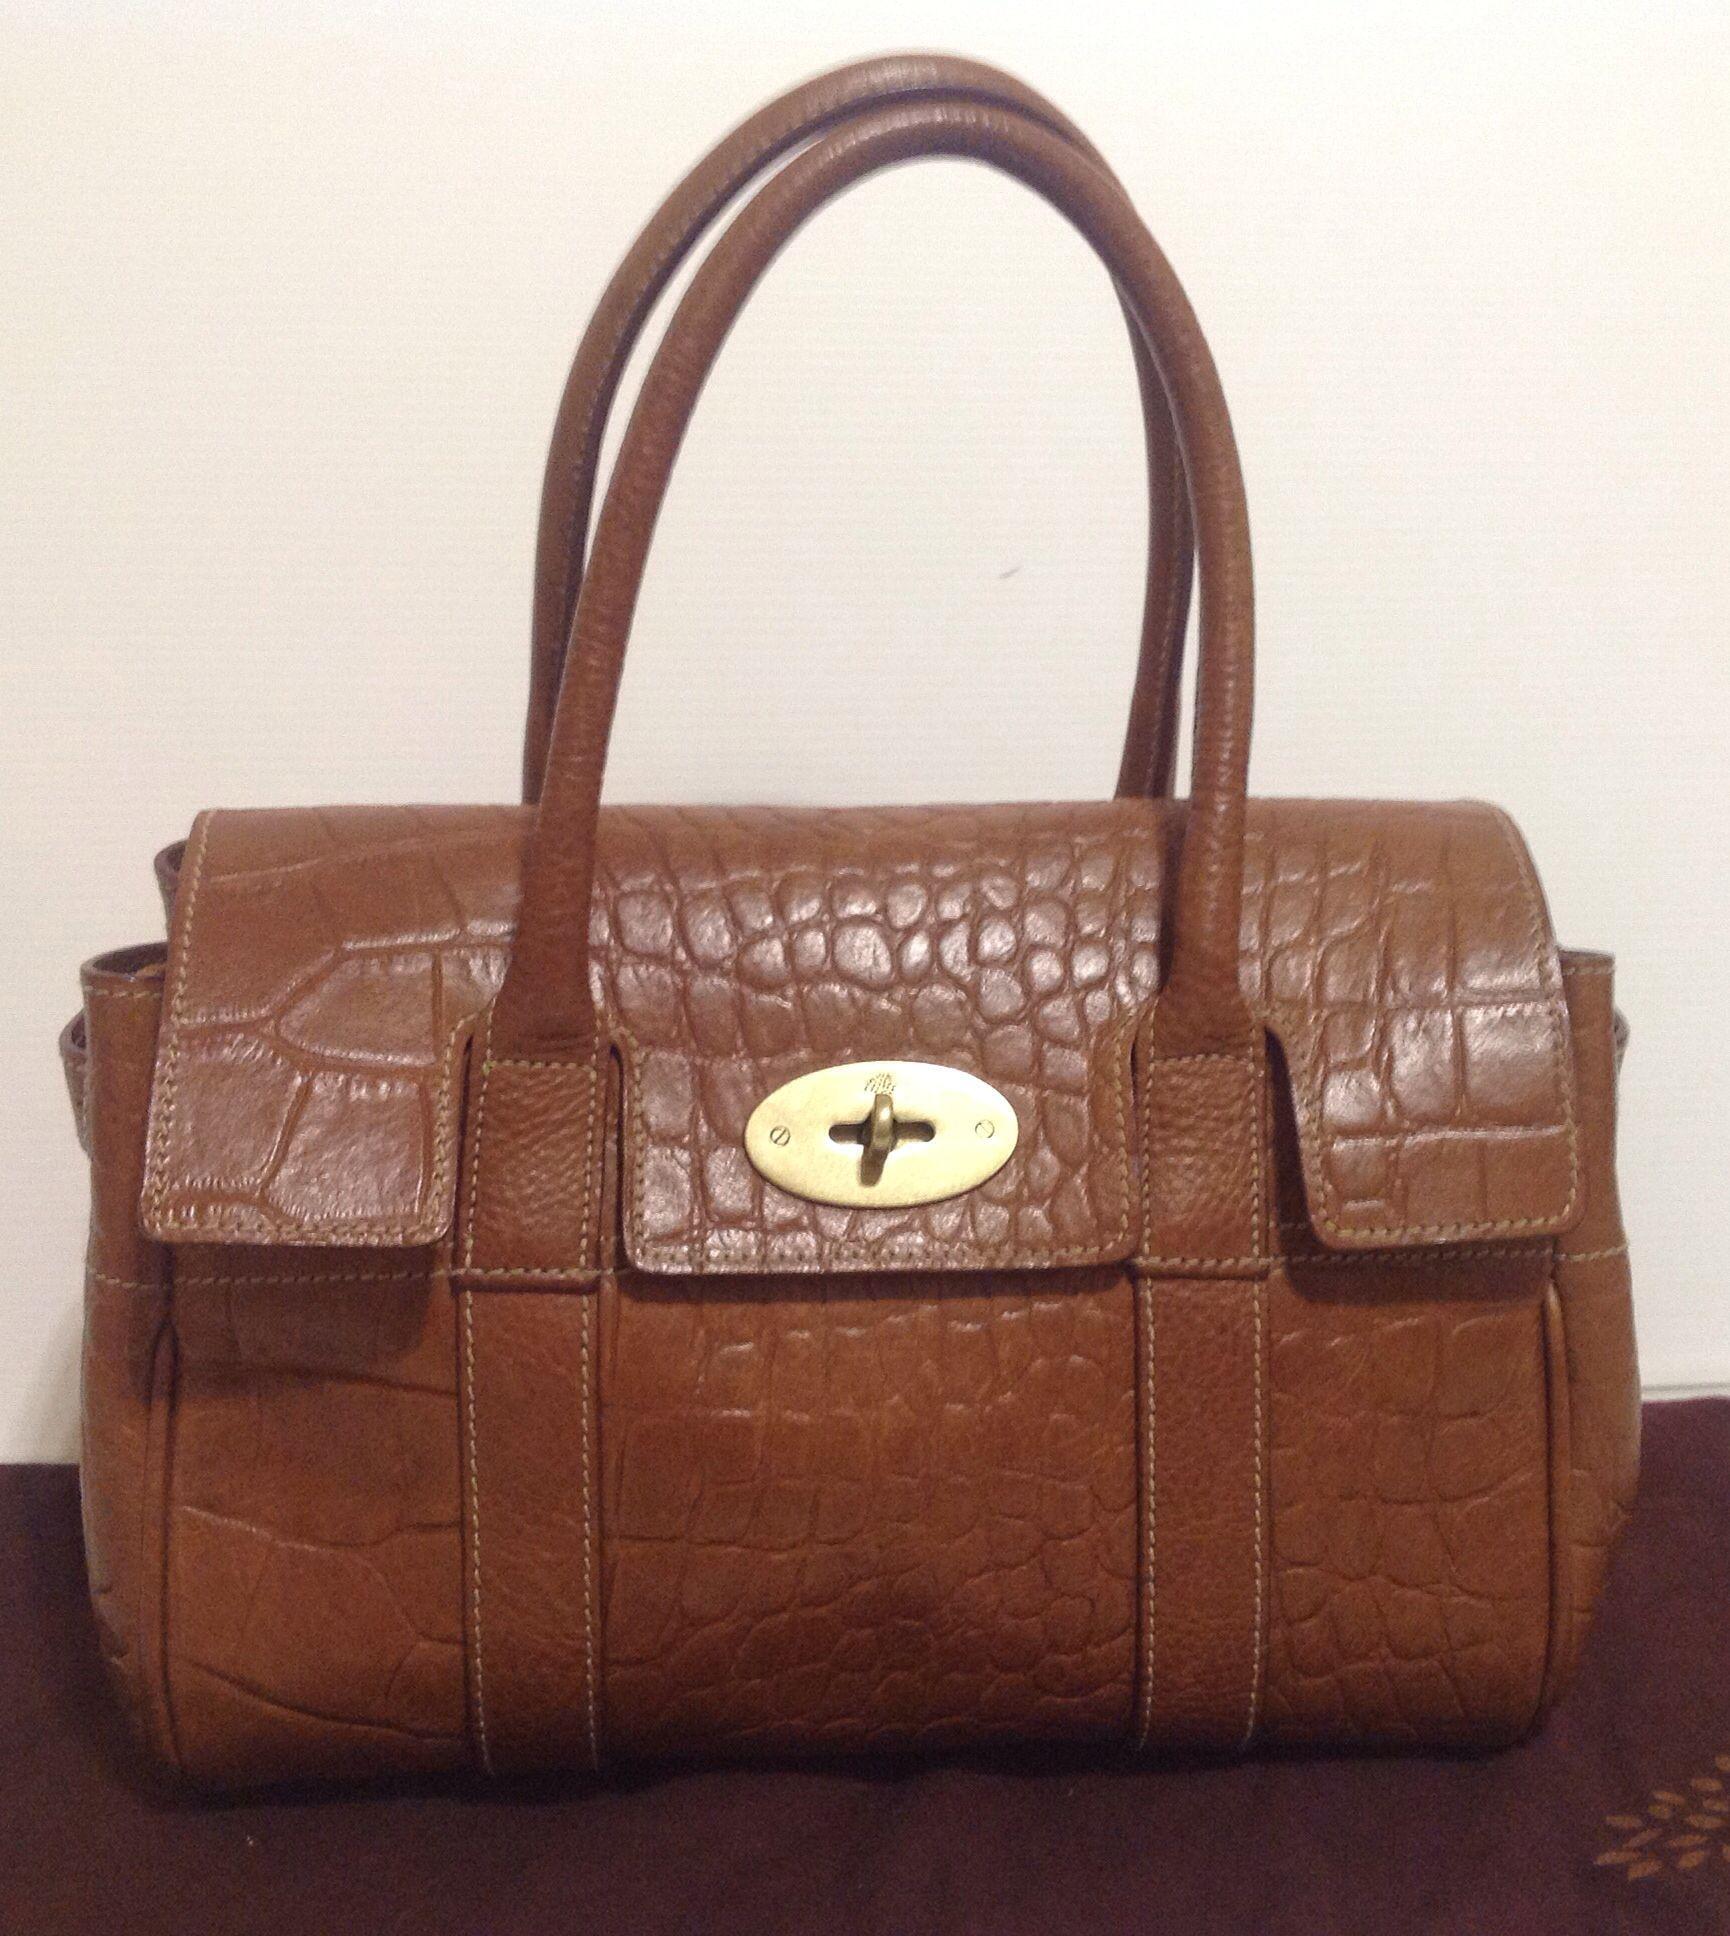 6ed0bd15177a clearance mulberry shoulder bag 8da0b a6868  promo code for authentic  mulberry ledbury baby bayswater oak congo leather. superb cond 475.00 this